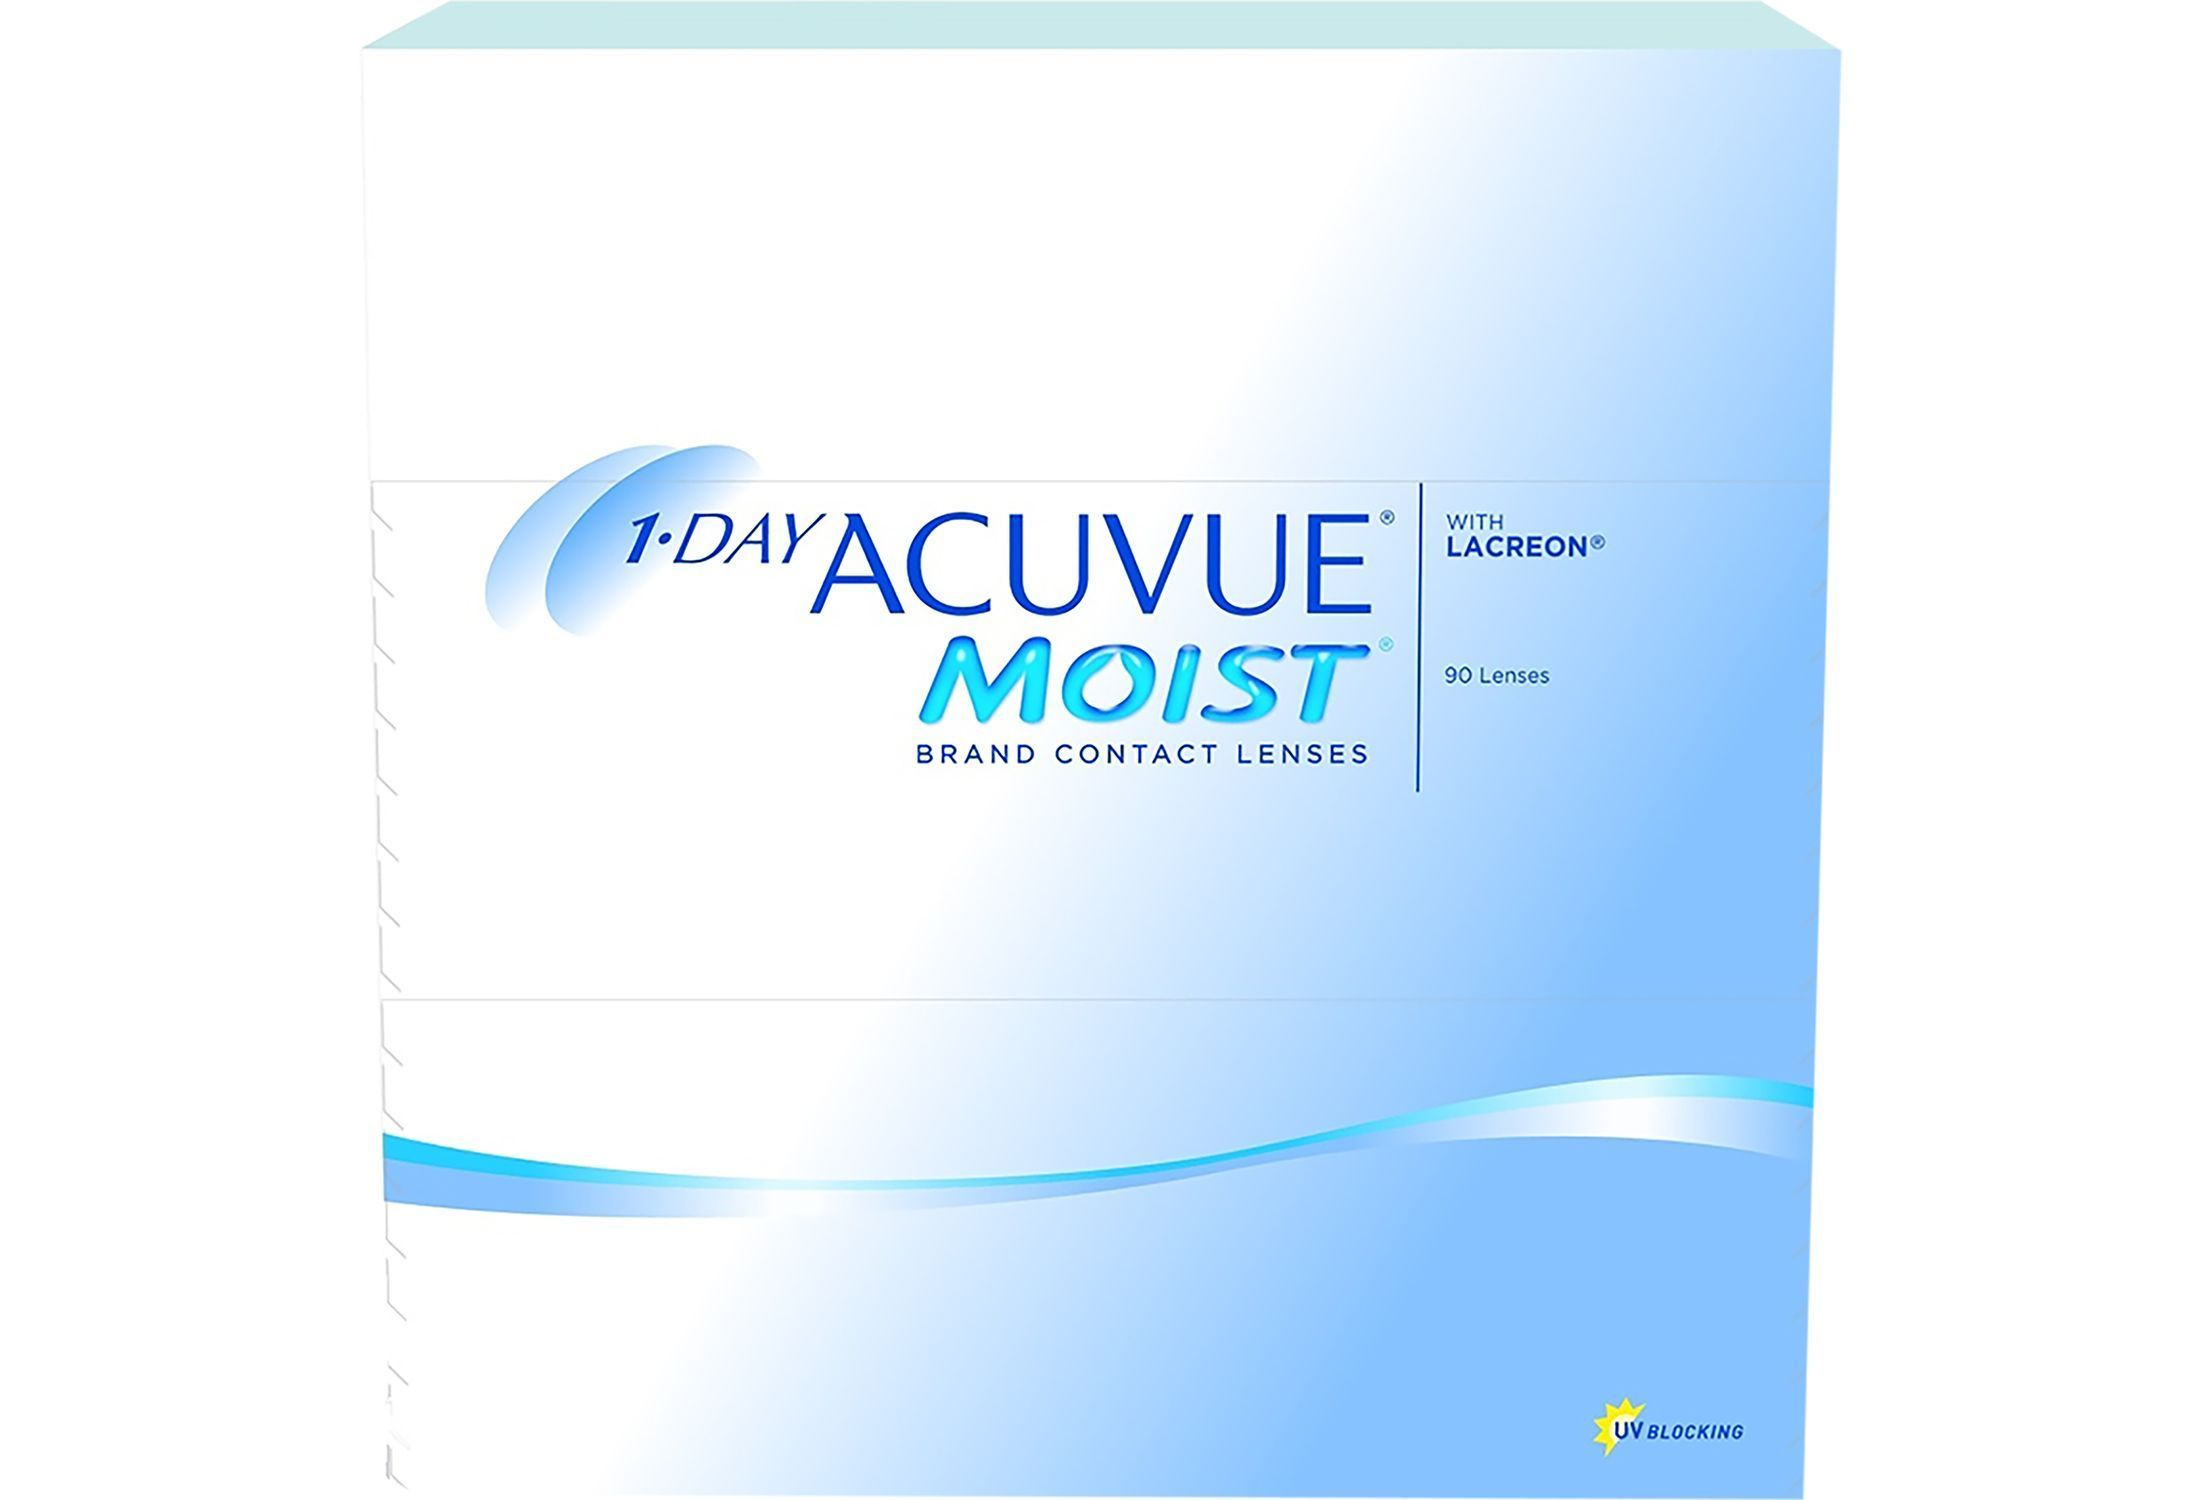 1-DAY ACUVUE MOIST 90 stk